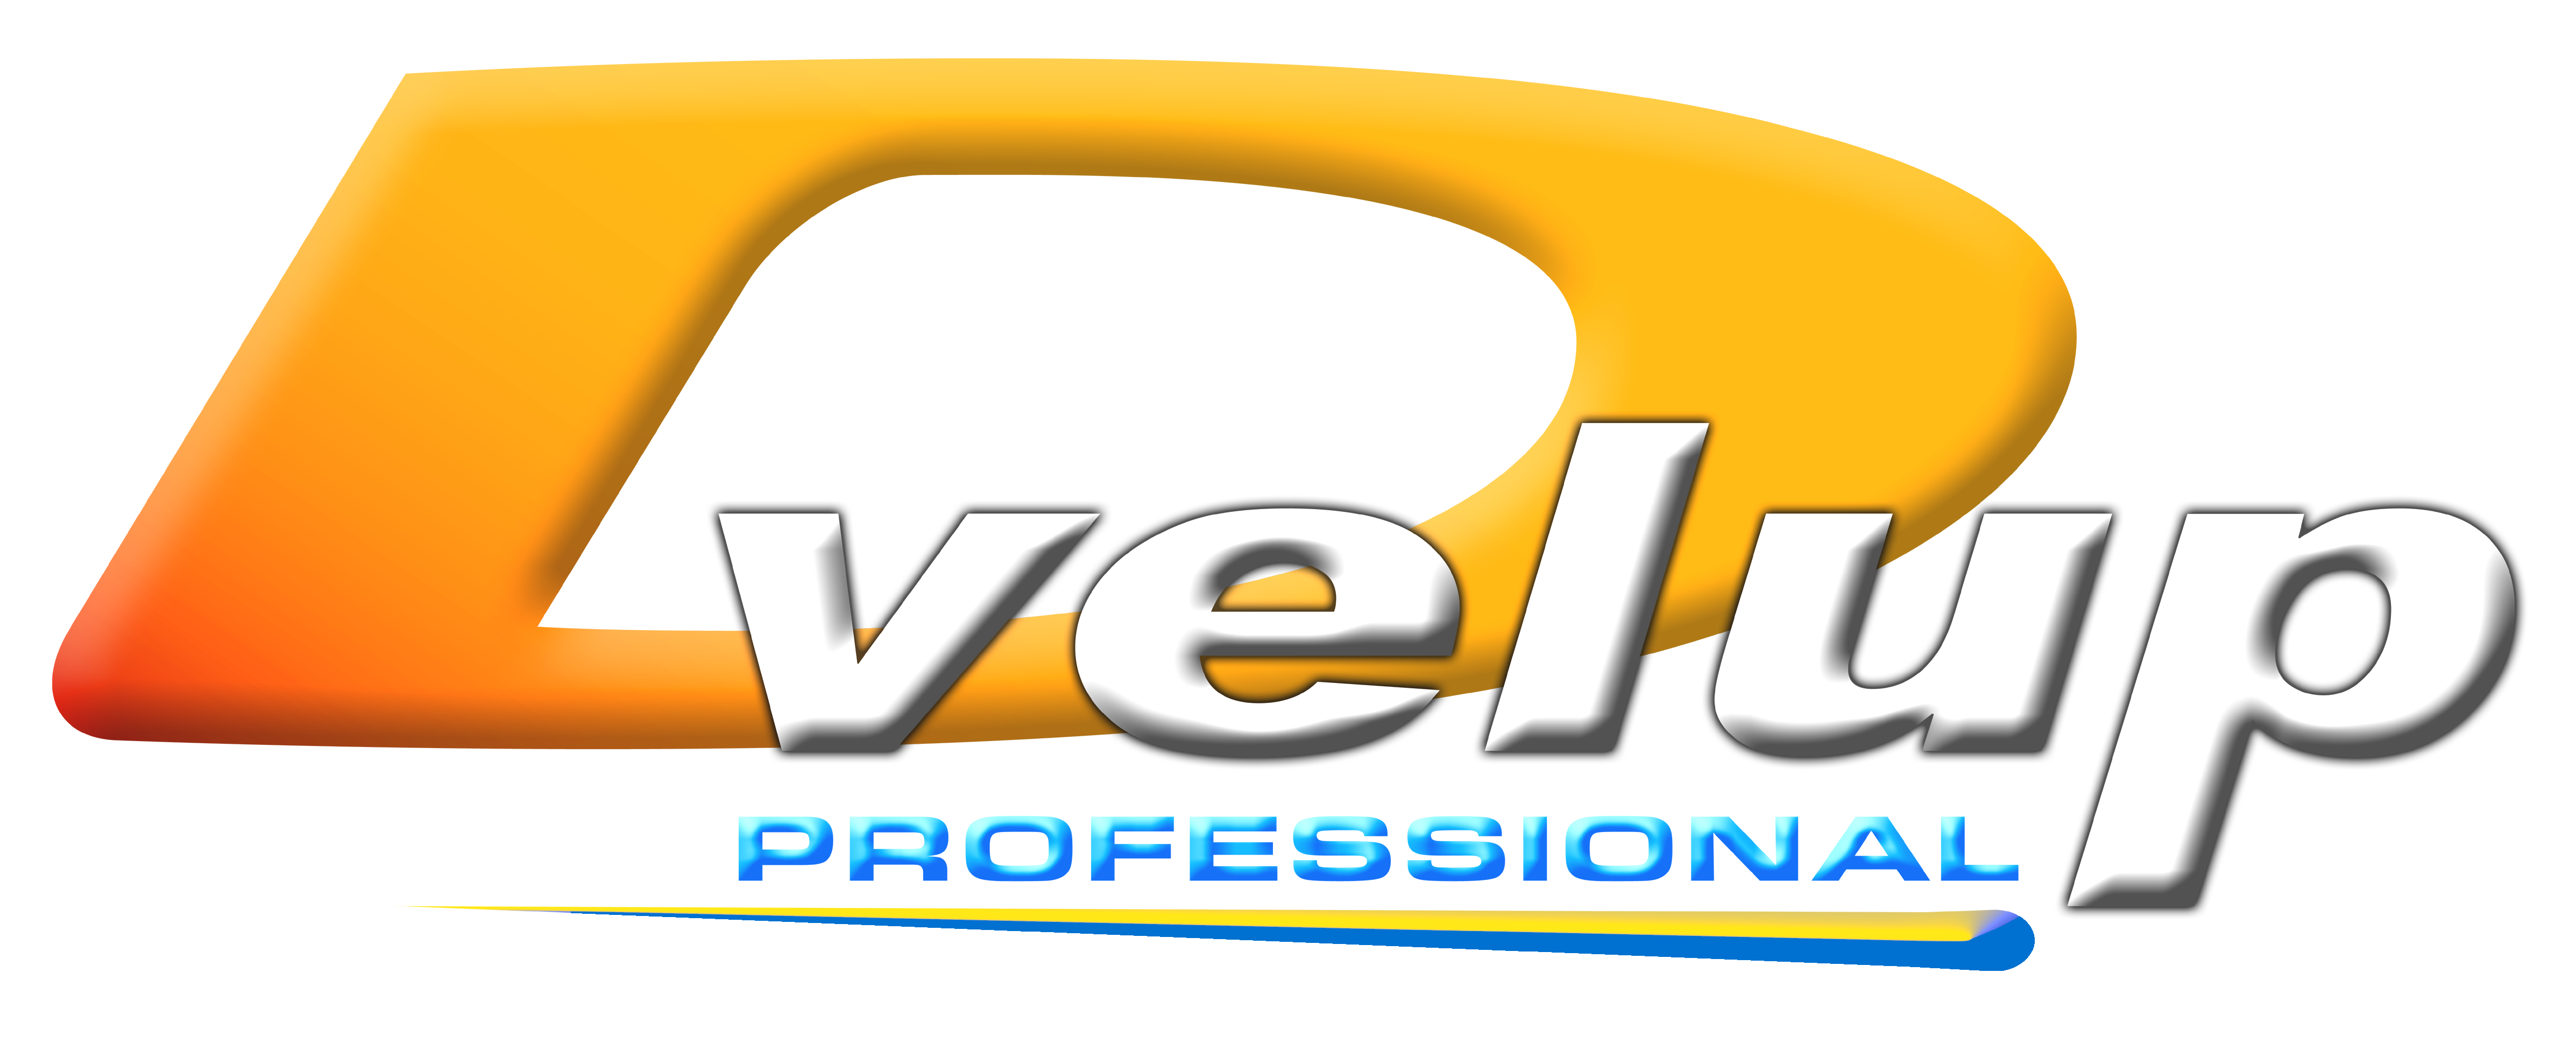 dvelup professional